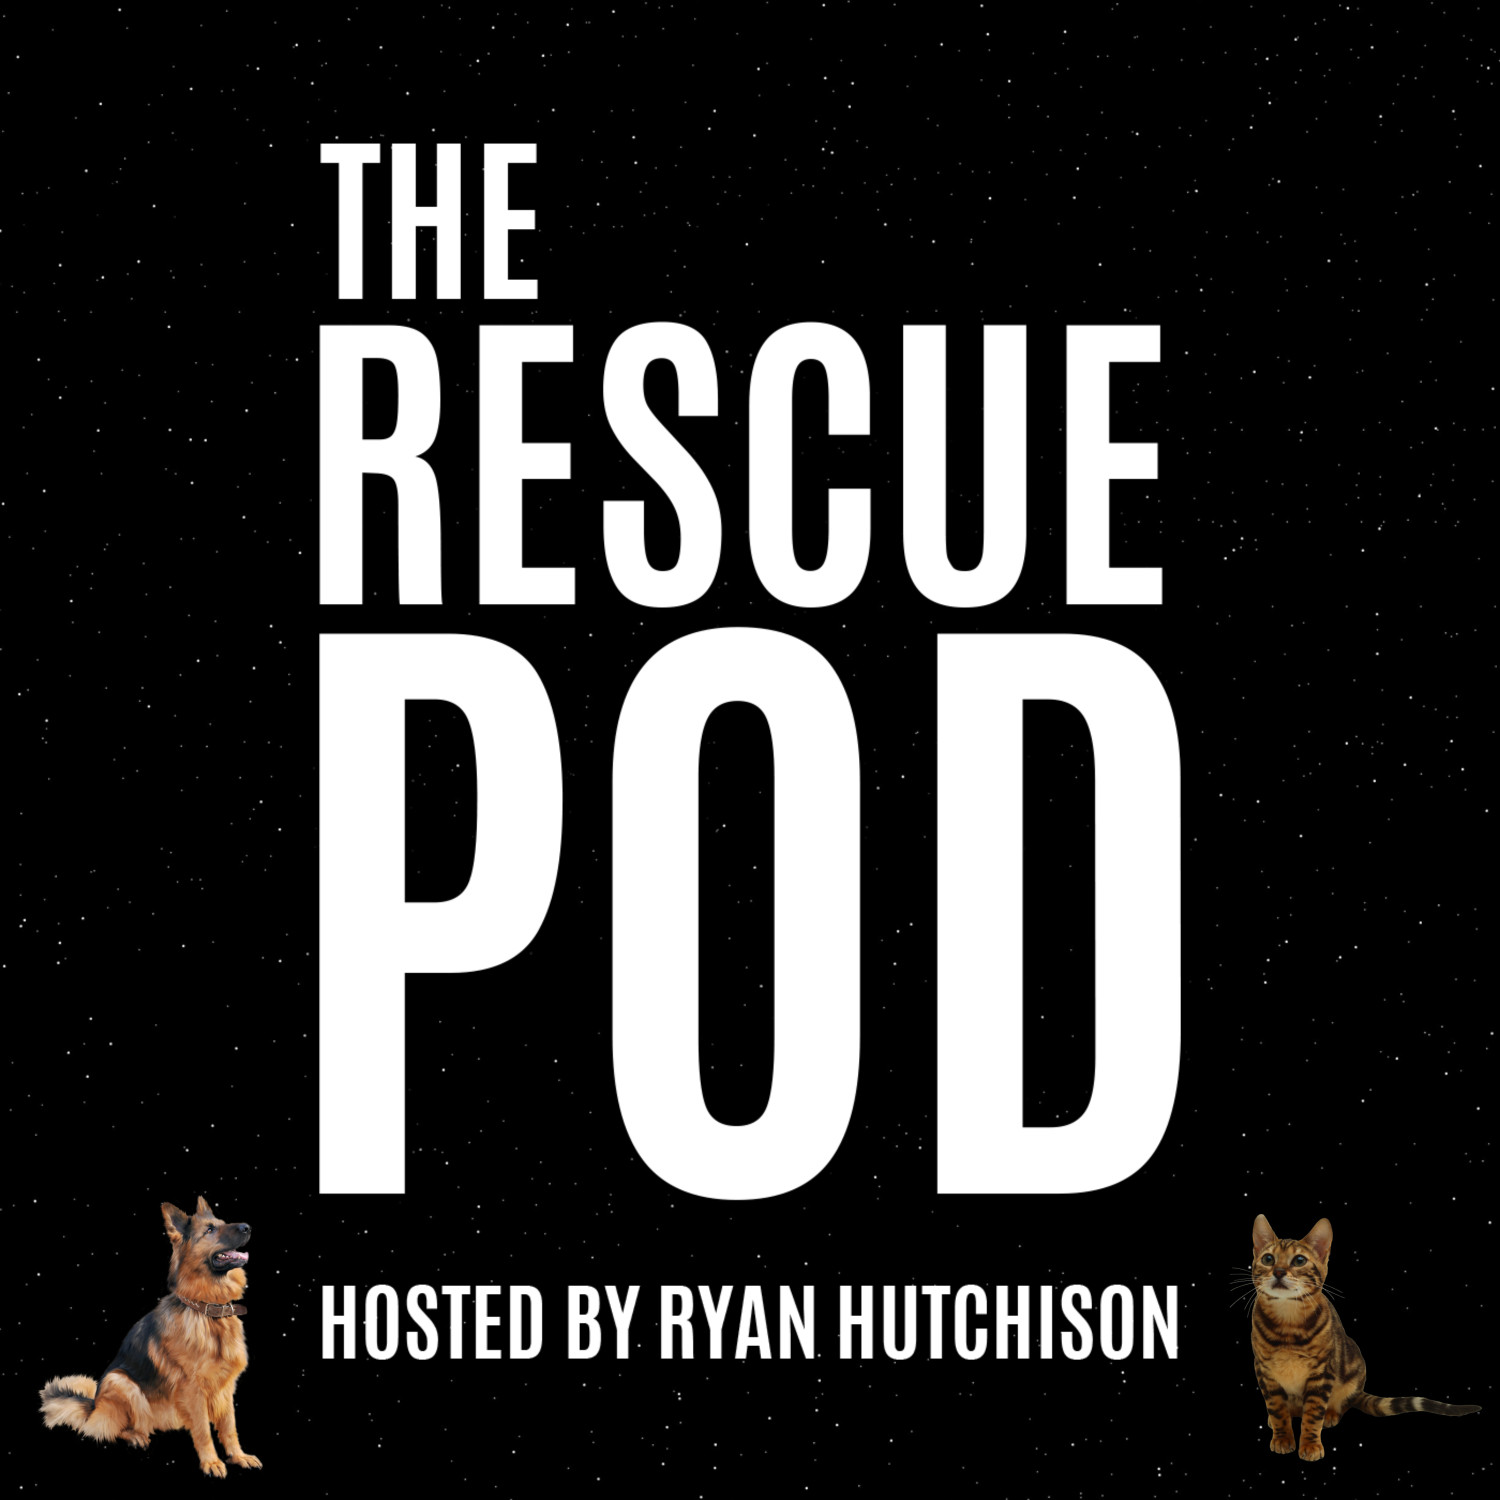 """Where animal rescue is always part of the conversation."" - 'The Rescue Pod' is a podcast where we discuss animal adoption, animal fostering, volunteering at animal rescue organisations and also responsible ownership.You can listen to the podcast by clicking here or by searching 'The Rescue Pod' on Apple Podcasts, Google Podcasts or Spotify.We hope that you get some value from the podcast and always appreciate constructive criticism!"